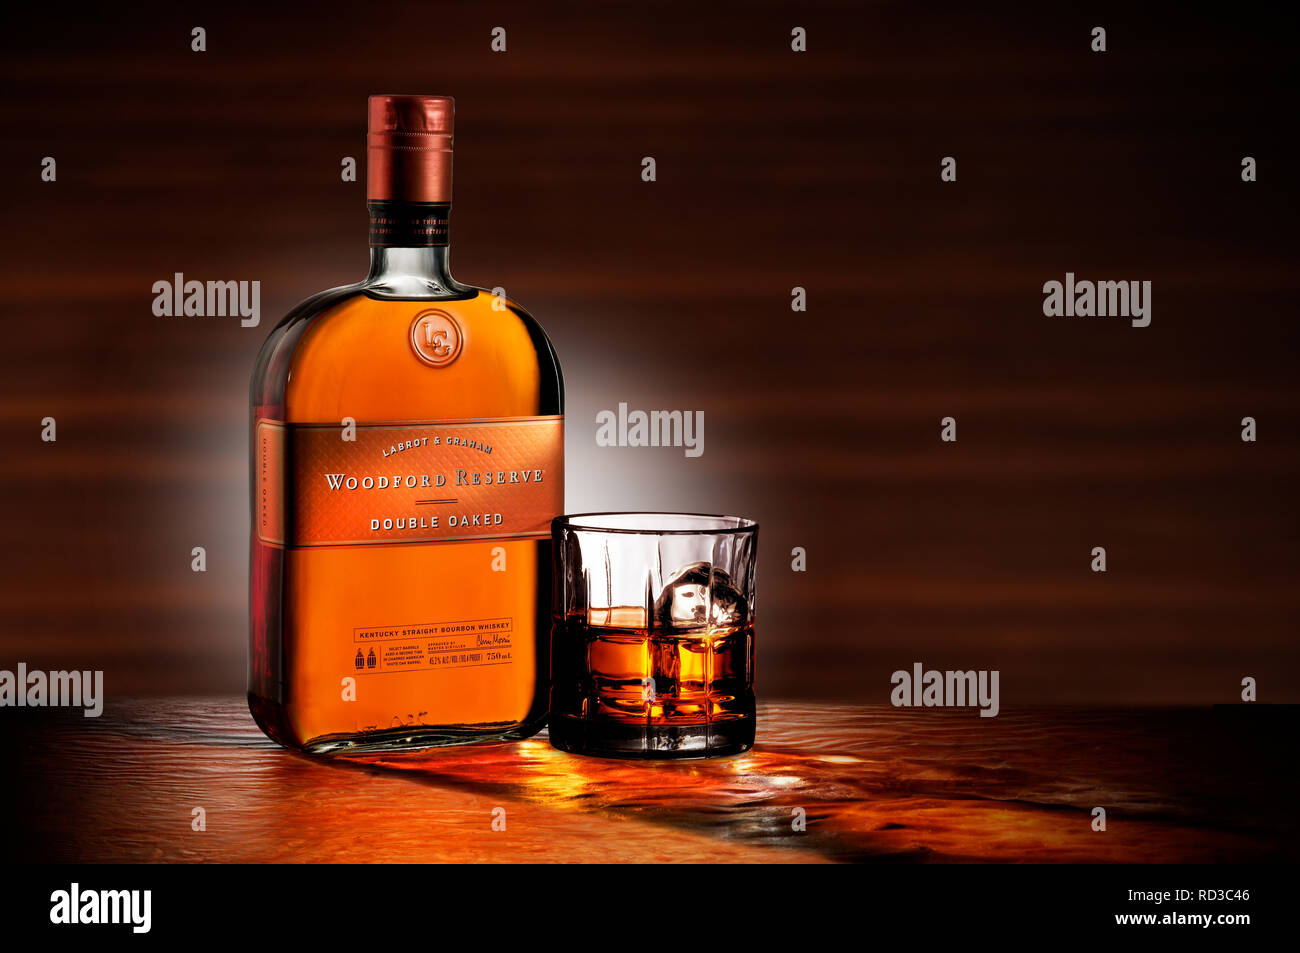 Color image of bottle of Woodford Reserve Whisky and a glass of whisky, studio shot - Stock Image